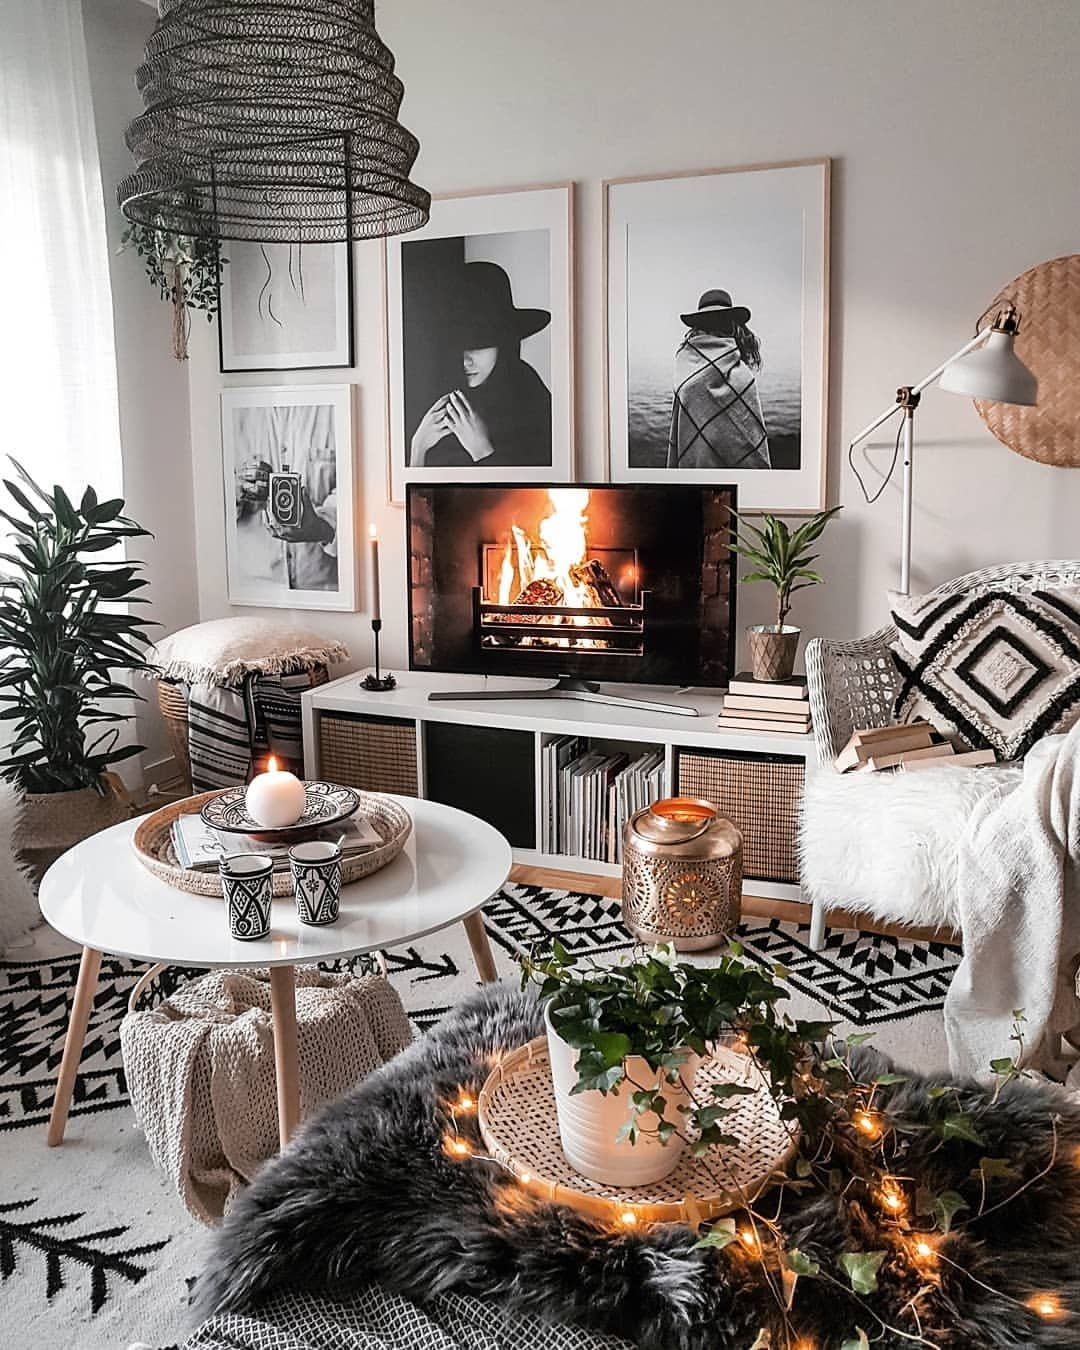 Wondrous Boho Living Room Decor On A Budget Ideas Spaces Living Room Chairs On Magnificent Mondays are Always so Hard for Me F to Bed soon I Wish On Boho Living Room Decor On A Budget Ideas Spaces Living Room Chairs